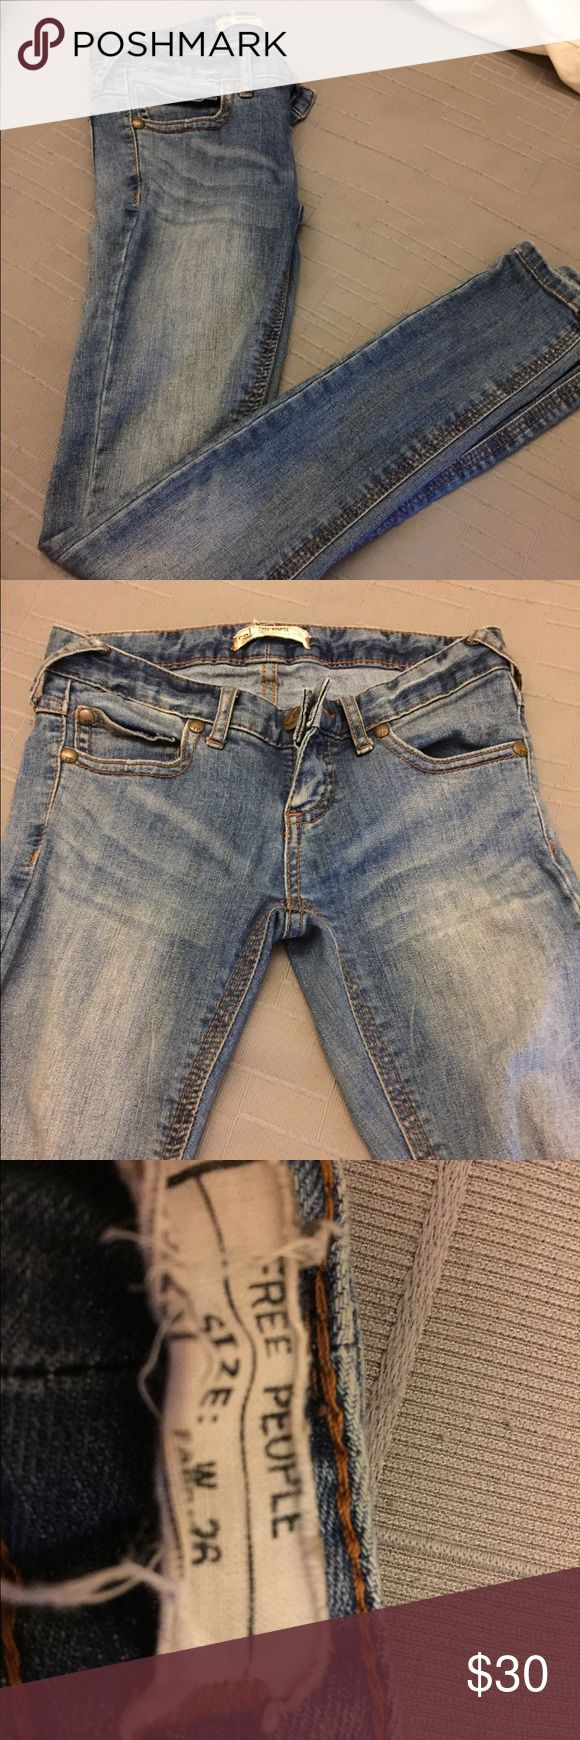 Free People Jeans!! Size 26 free people jeans. Very comfortable and super cute skinny jeans! Free People Pants Skinny